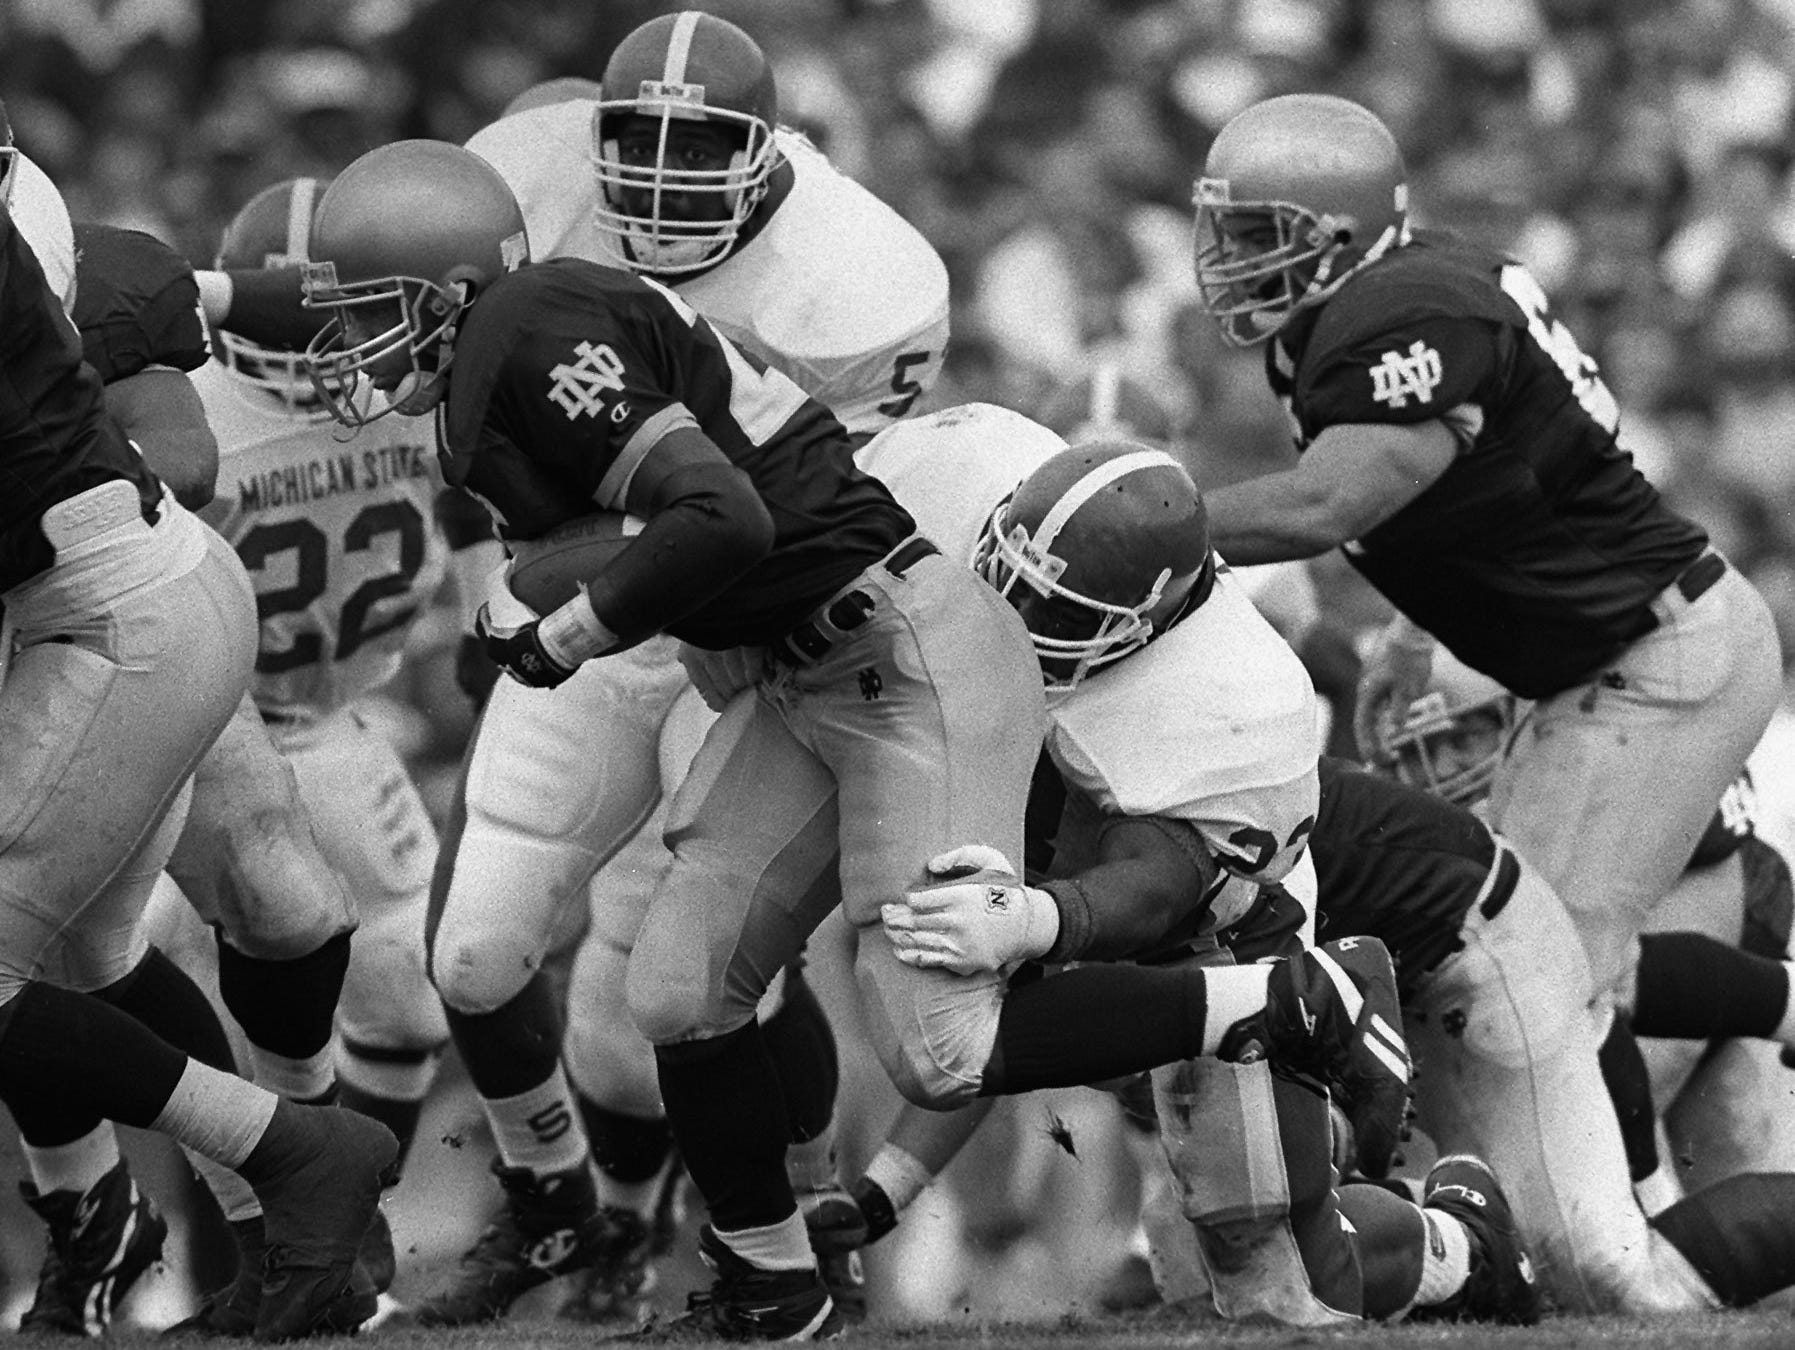 Randy Kinder runs the ball against Michigan State on Sept. 18, 1993 in South Bend, Indiana. The Irish won 36-14 on their way to a No. 2 national finish that season. Kinder, from East Lansing, rushed for 537 yards as a true freshman that season.